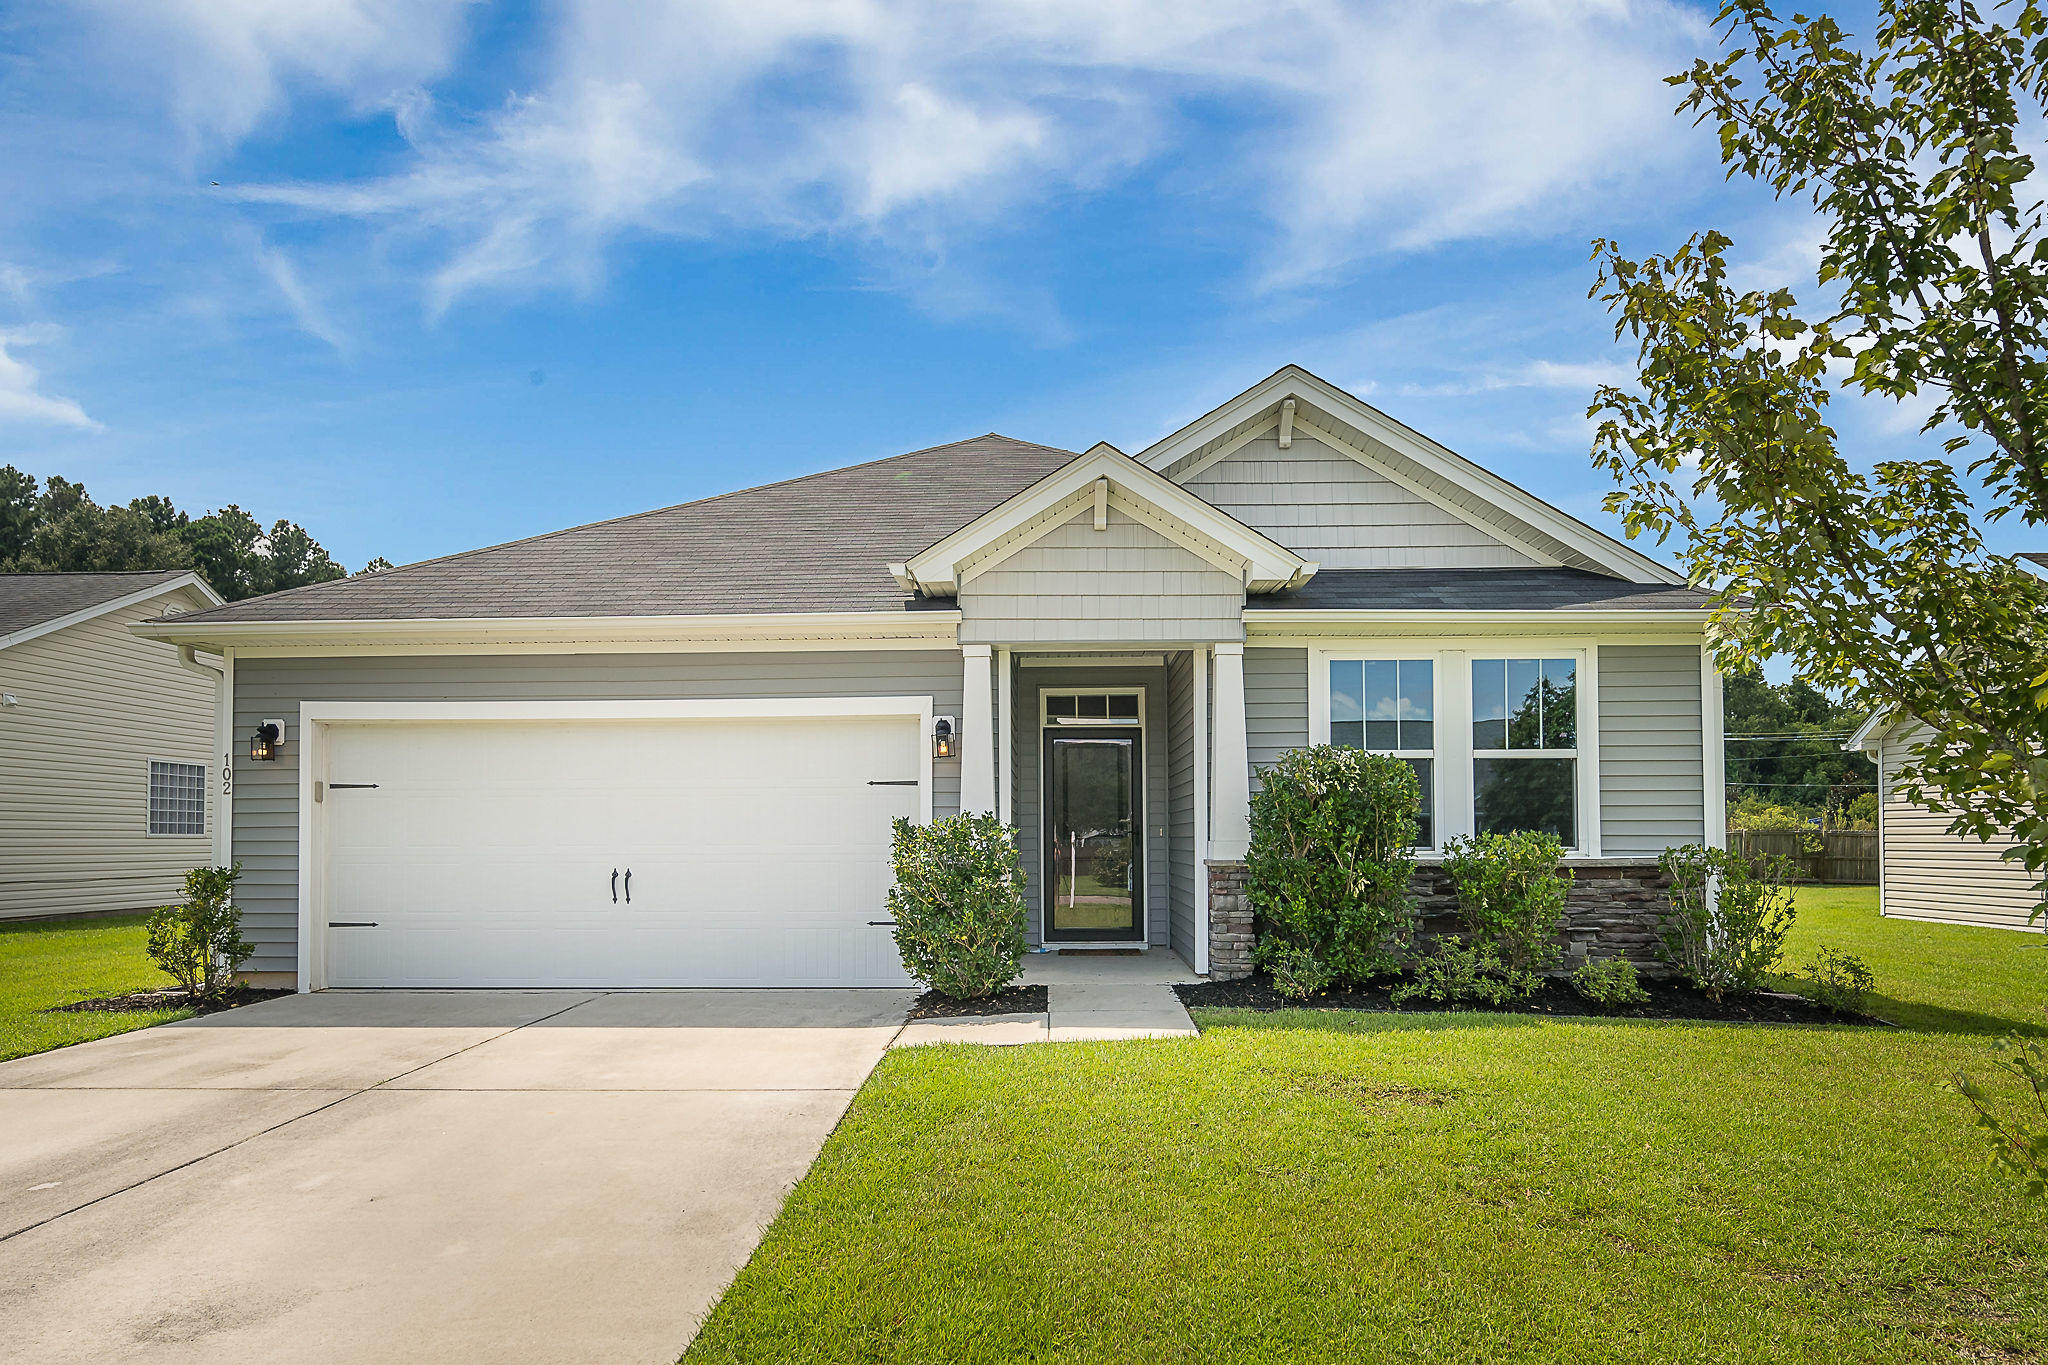 Montague Pointe Homes For Sale - 102 Gavins, Goose Creek, SC - 20